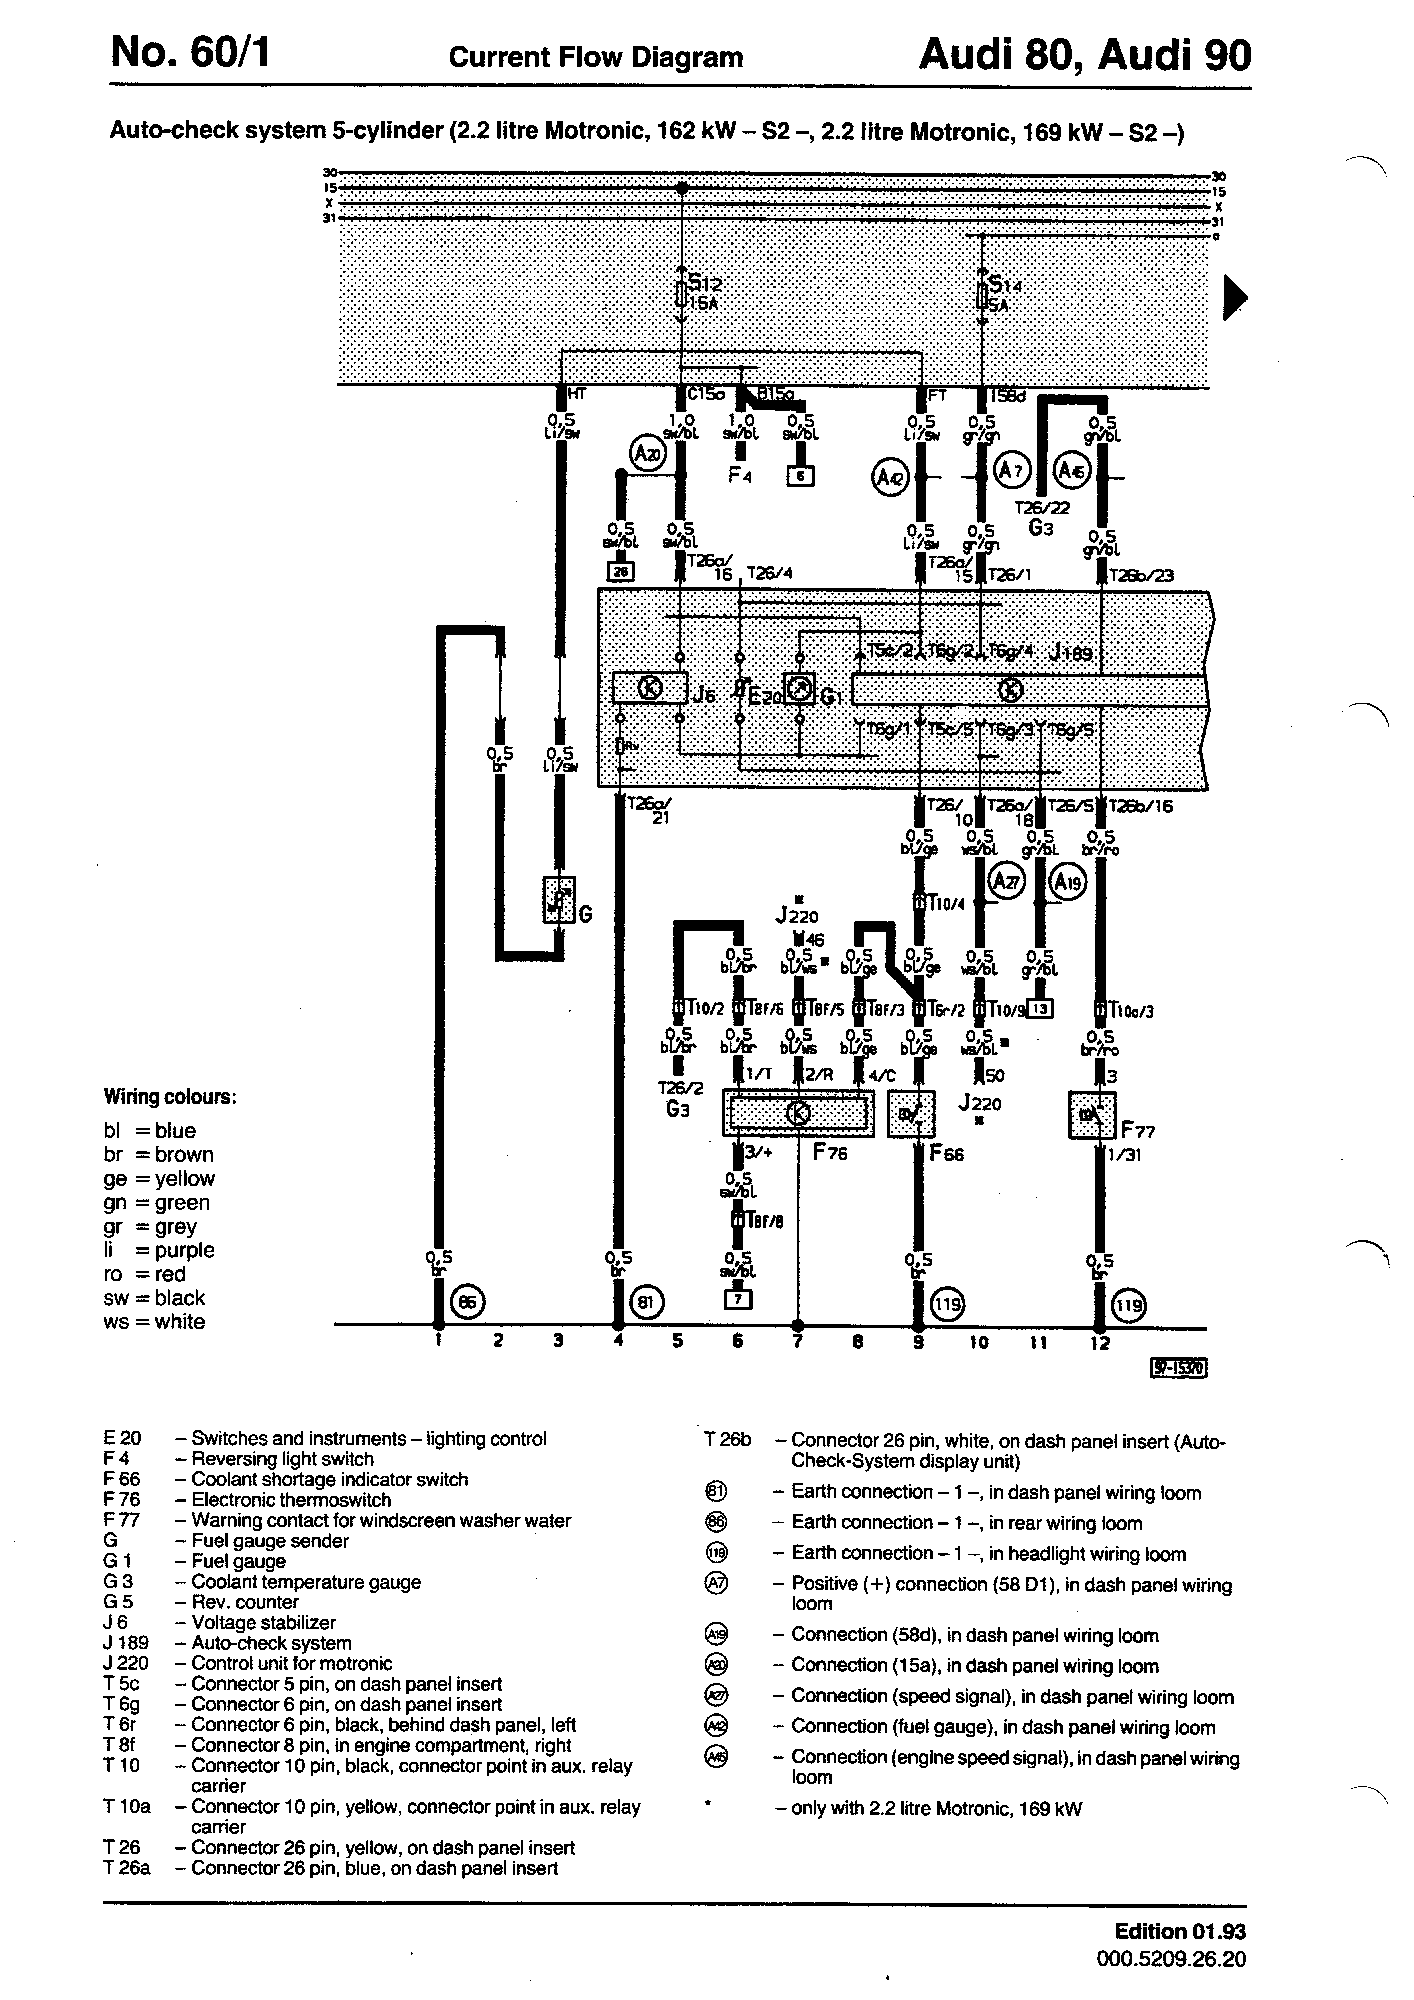 Wiring Diagrams Component Lookup 1998 Audi A4 B5 Interior Light Diagram Audi  Rs2 Wiring Diagram